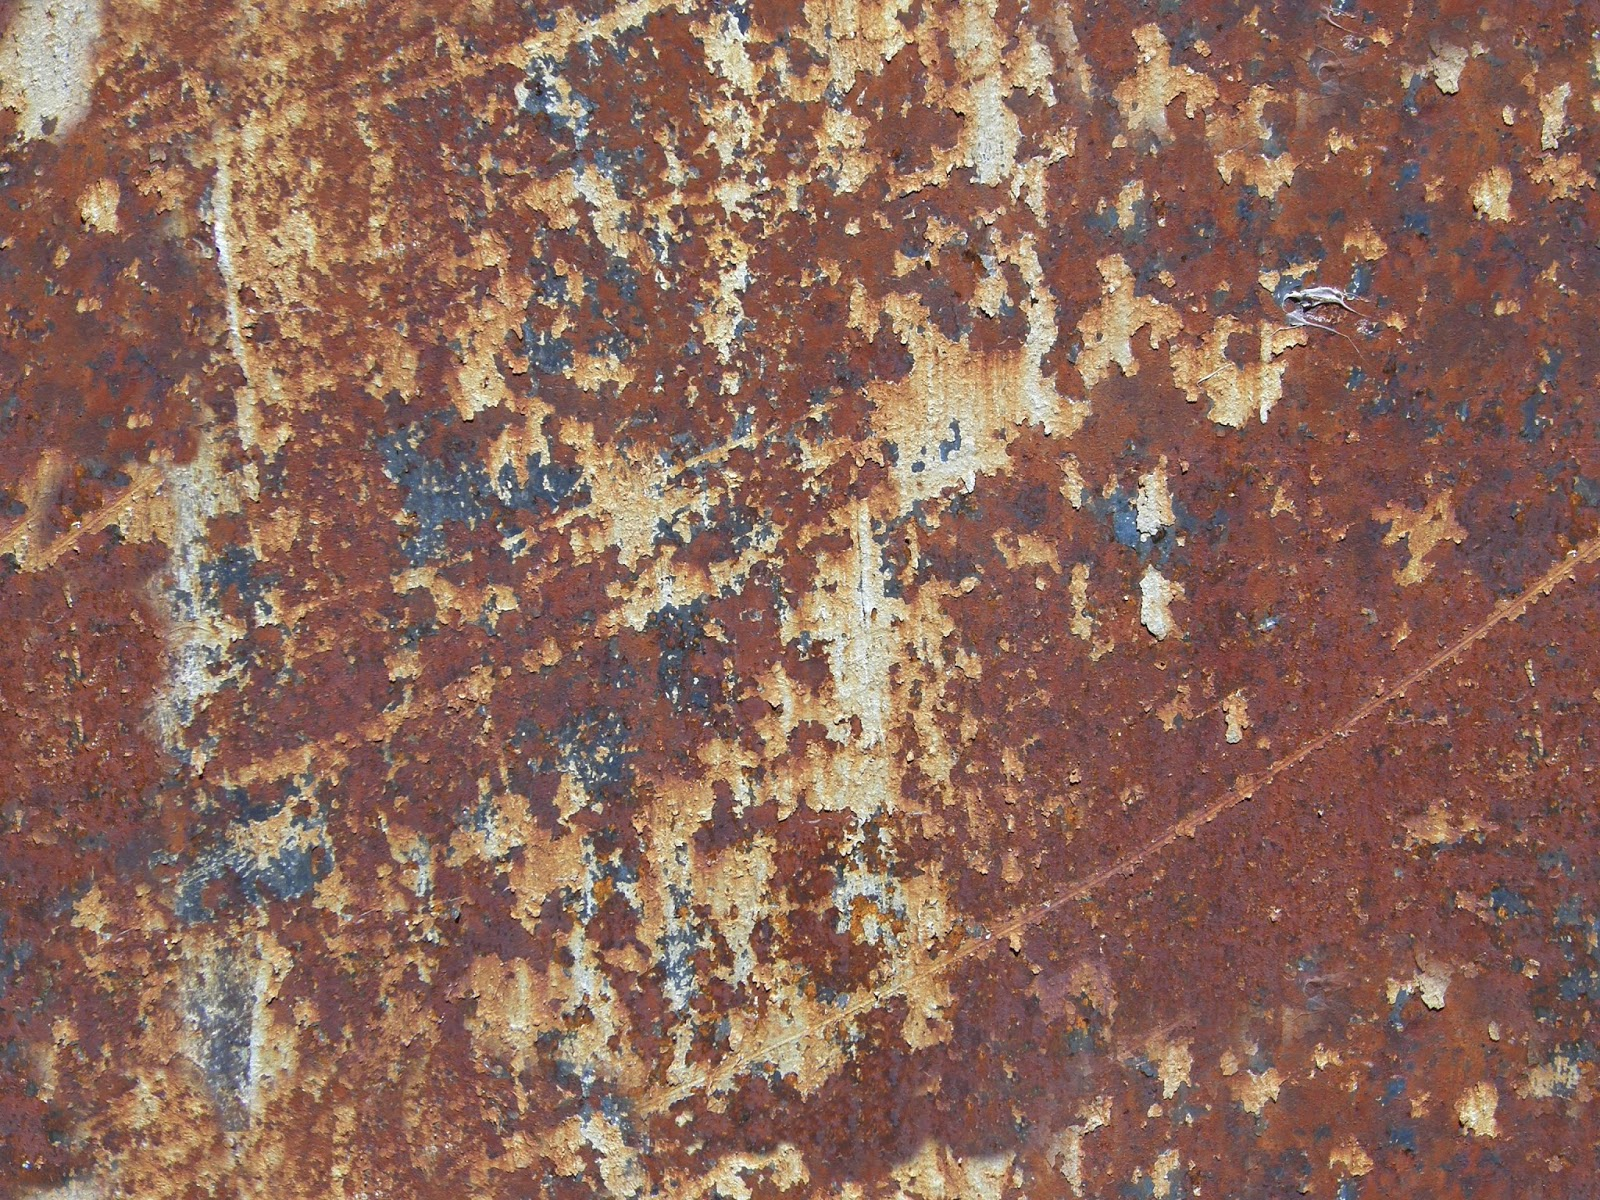 Seamless Rust Texture + (Maps) | Texturise Free Seamless Textures With Maps